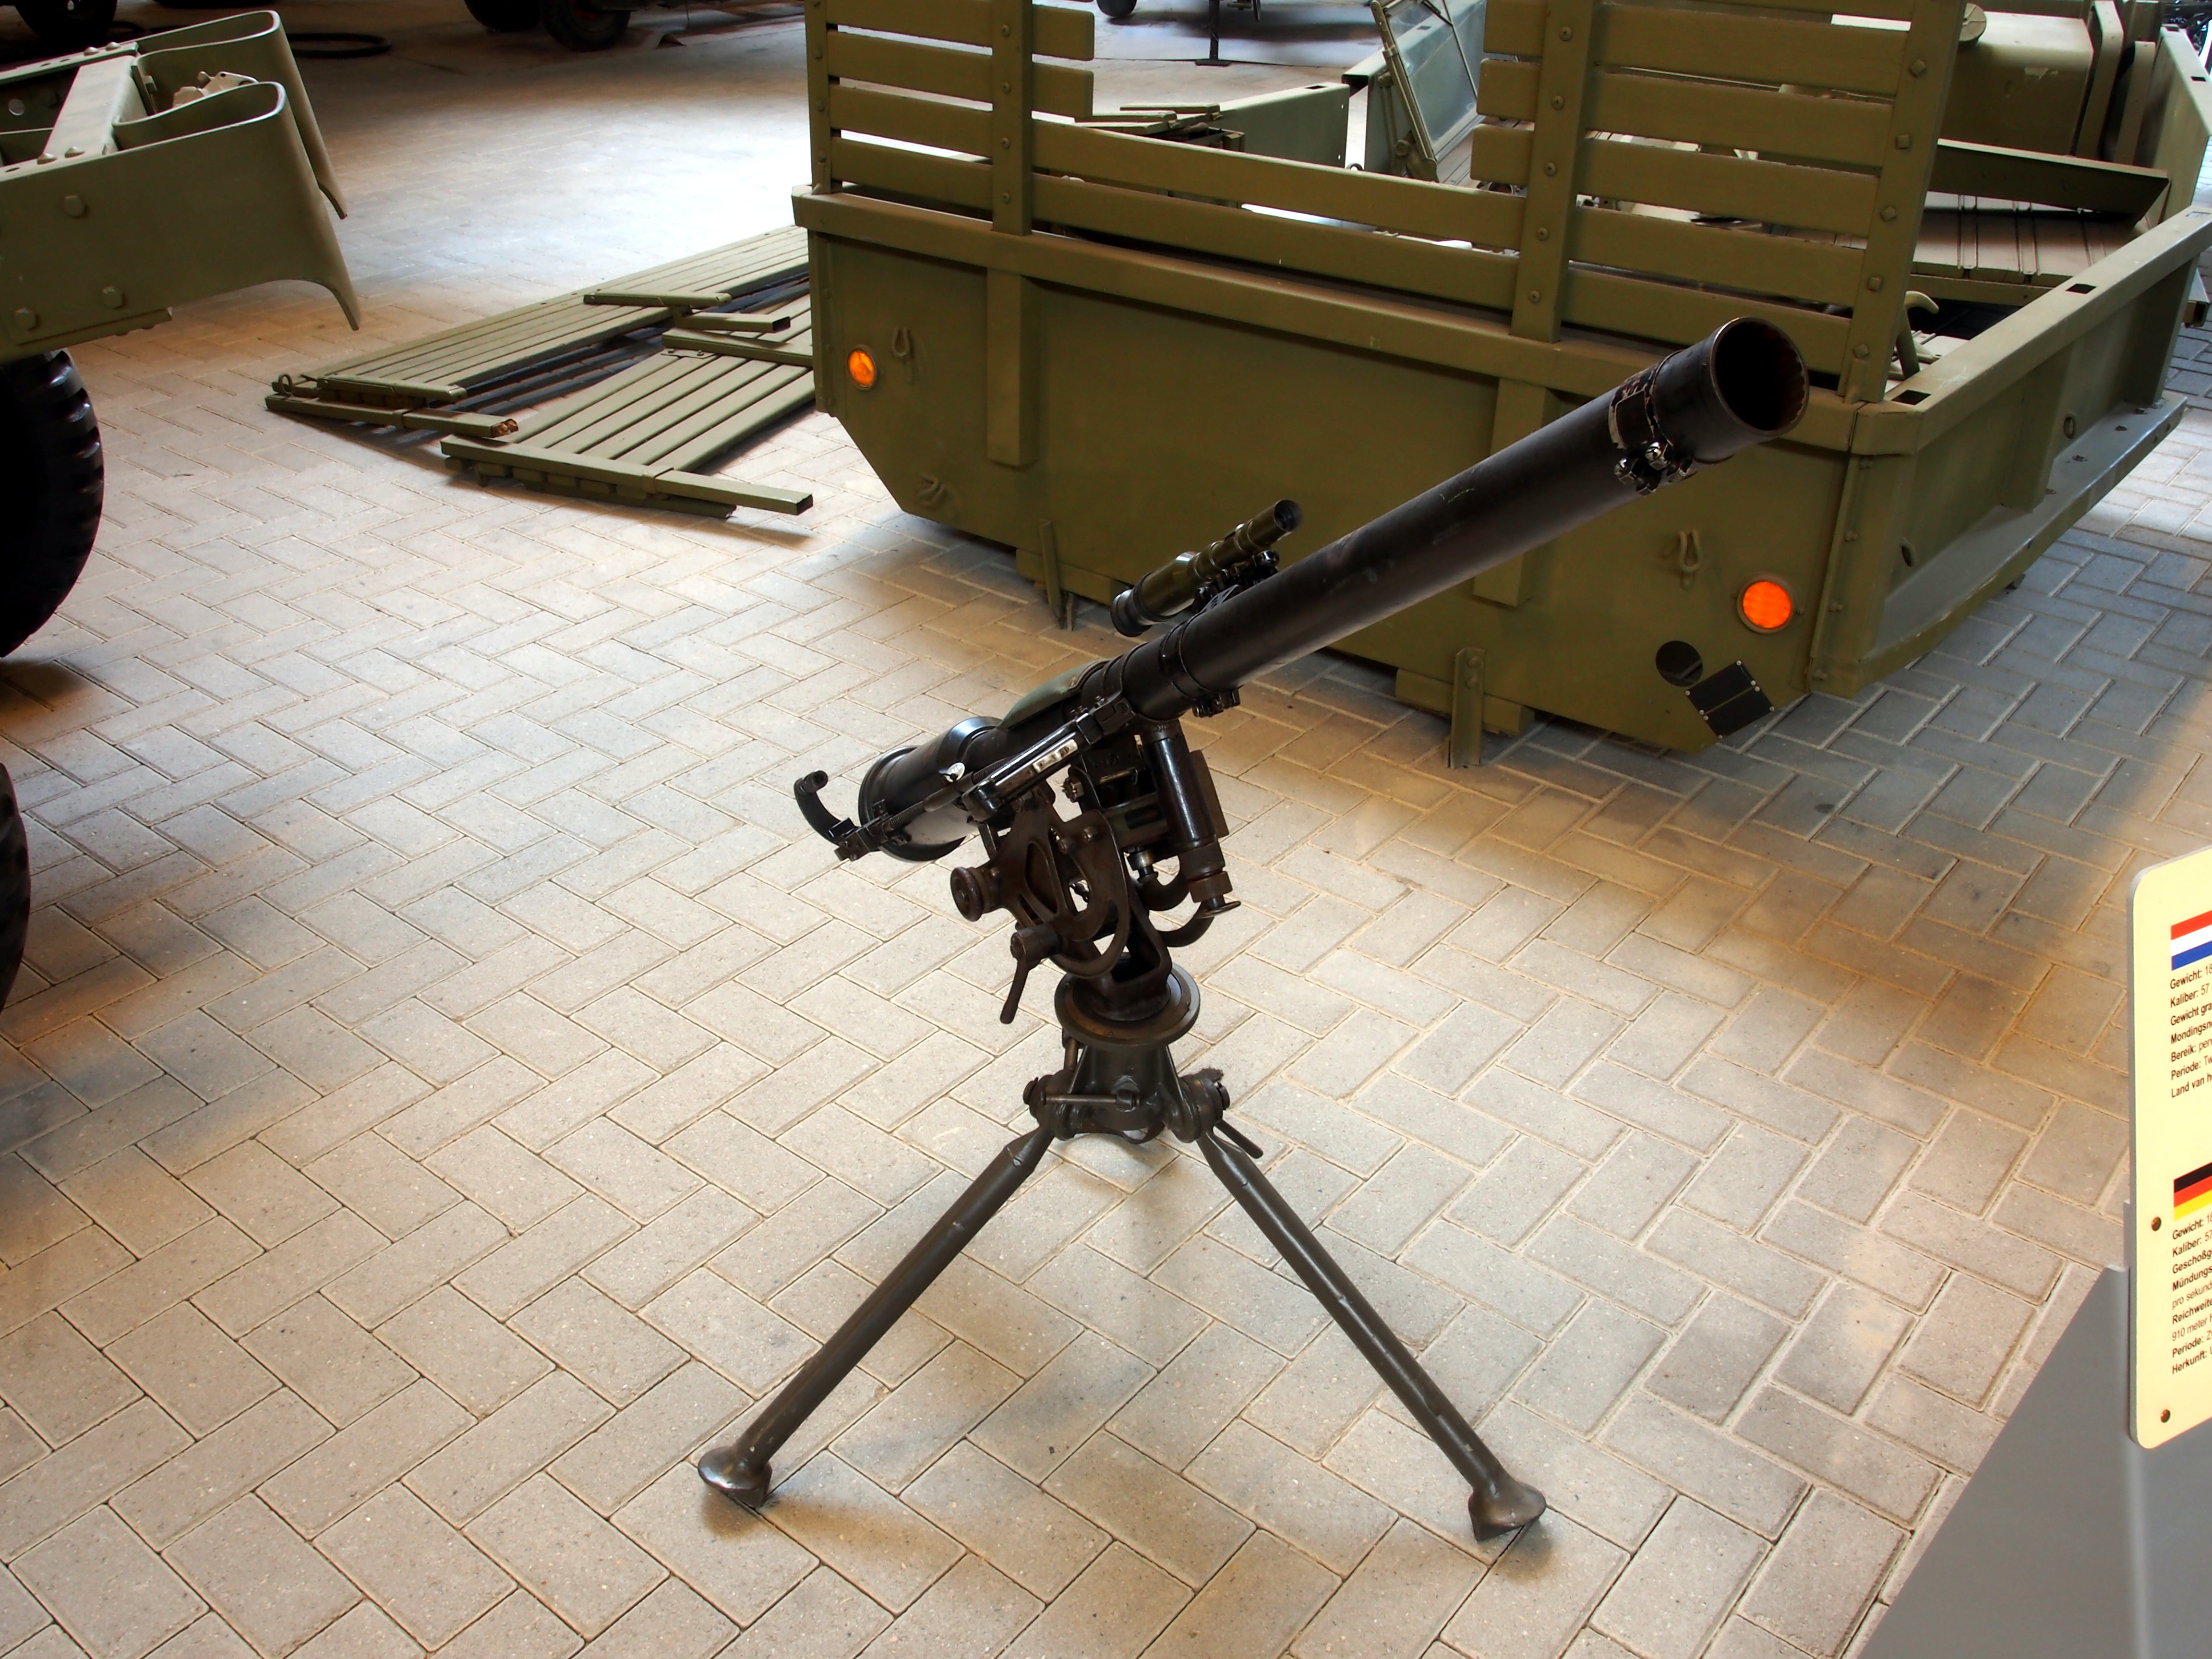 [Image: M18_57mm_Recoilless_Rifle_pic1.JPG]